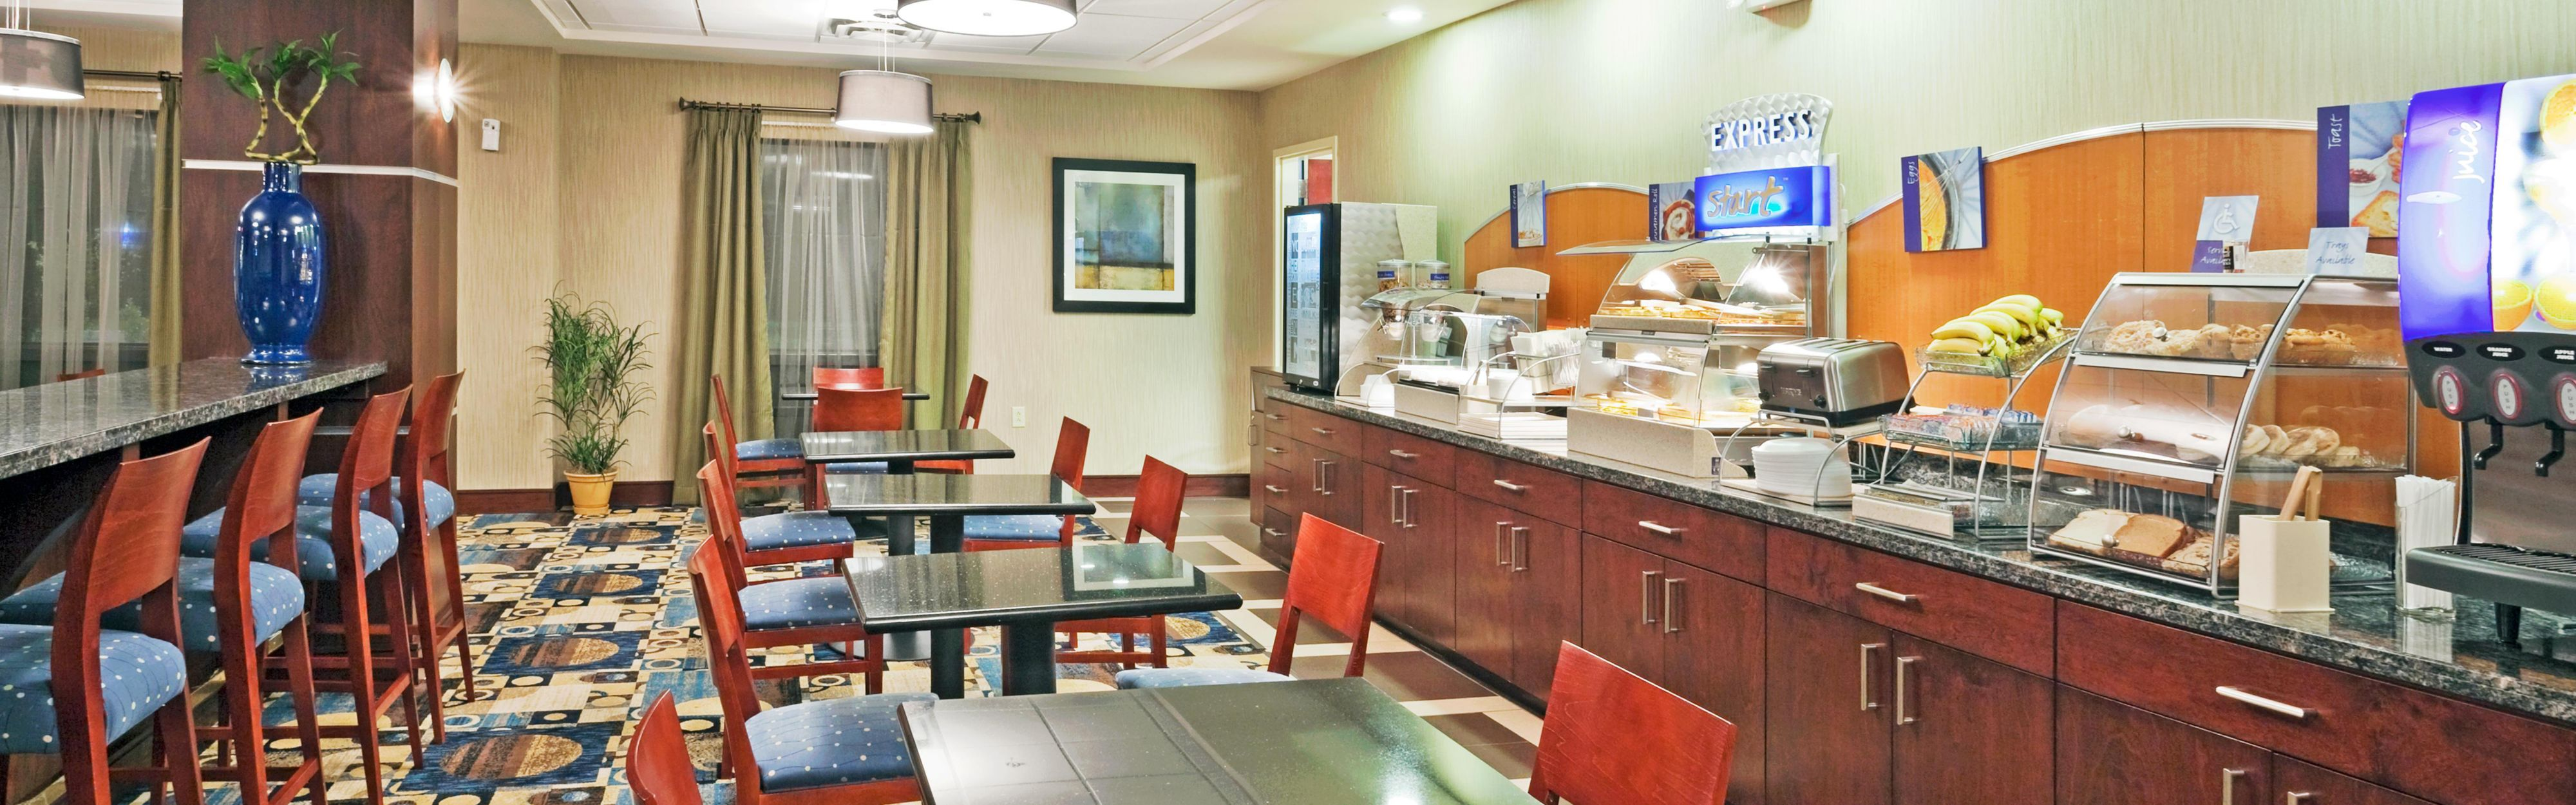 Holiday Inn Express & Suites Knoxville-Farragut image 3